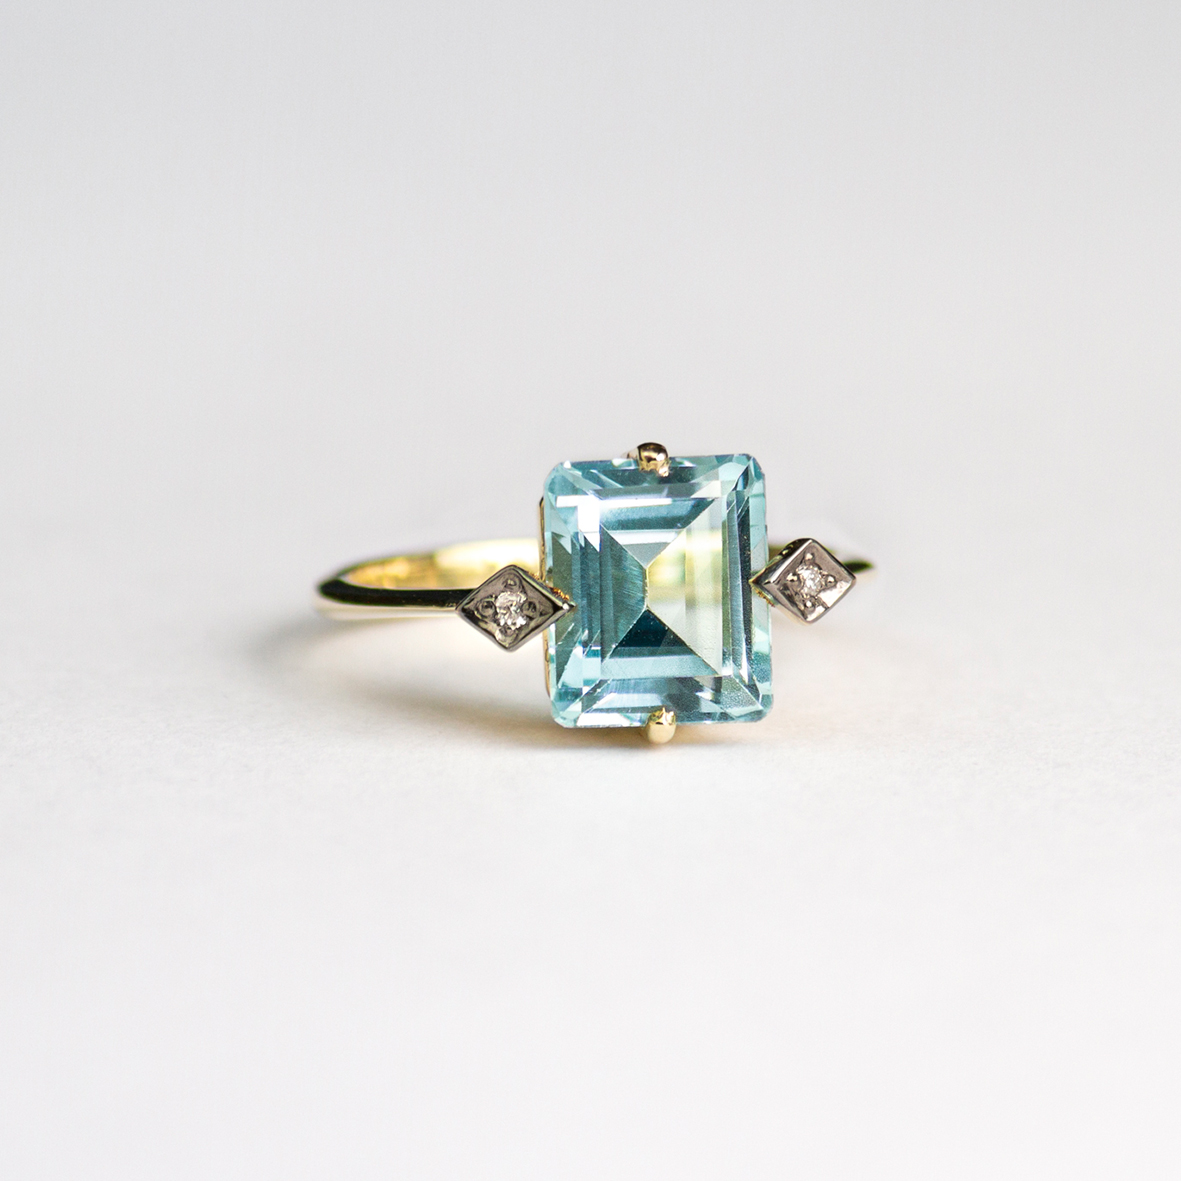 3. OONA_gems of ceylon_ficha1_blue aquamarine ring